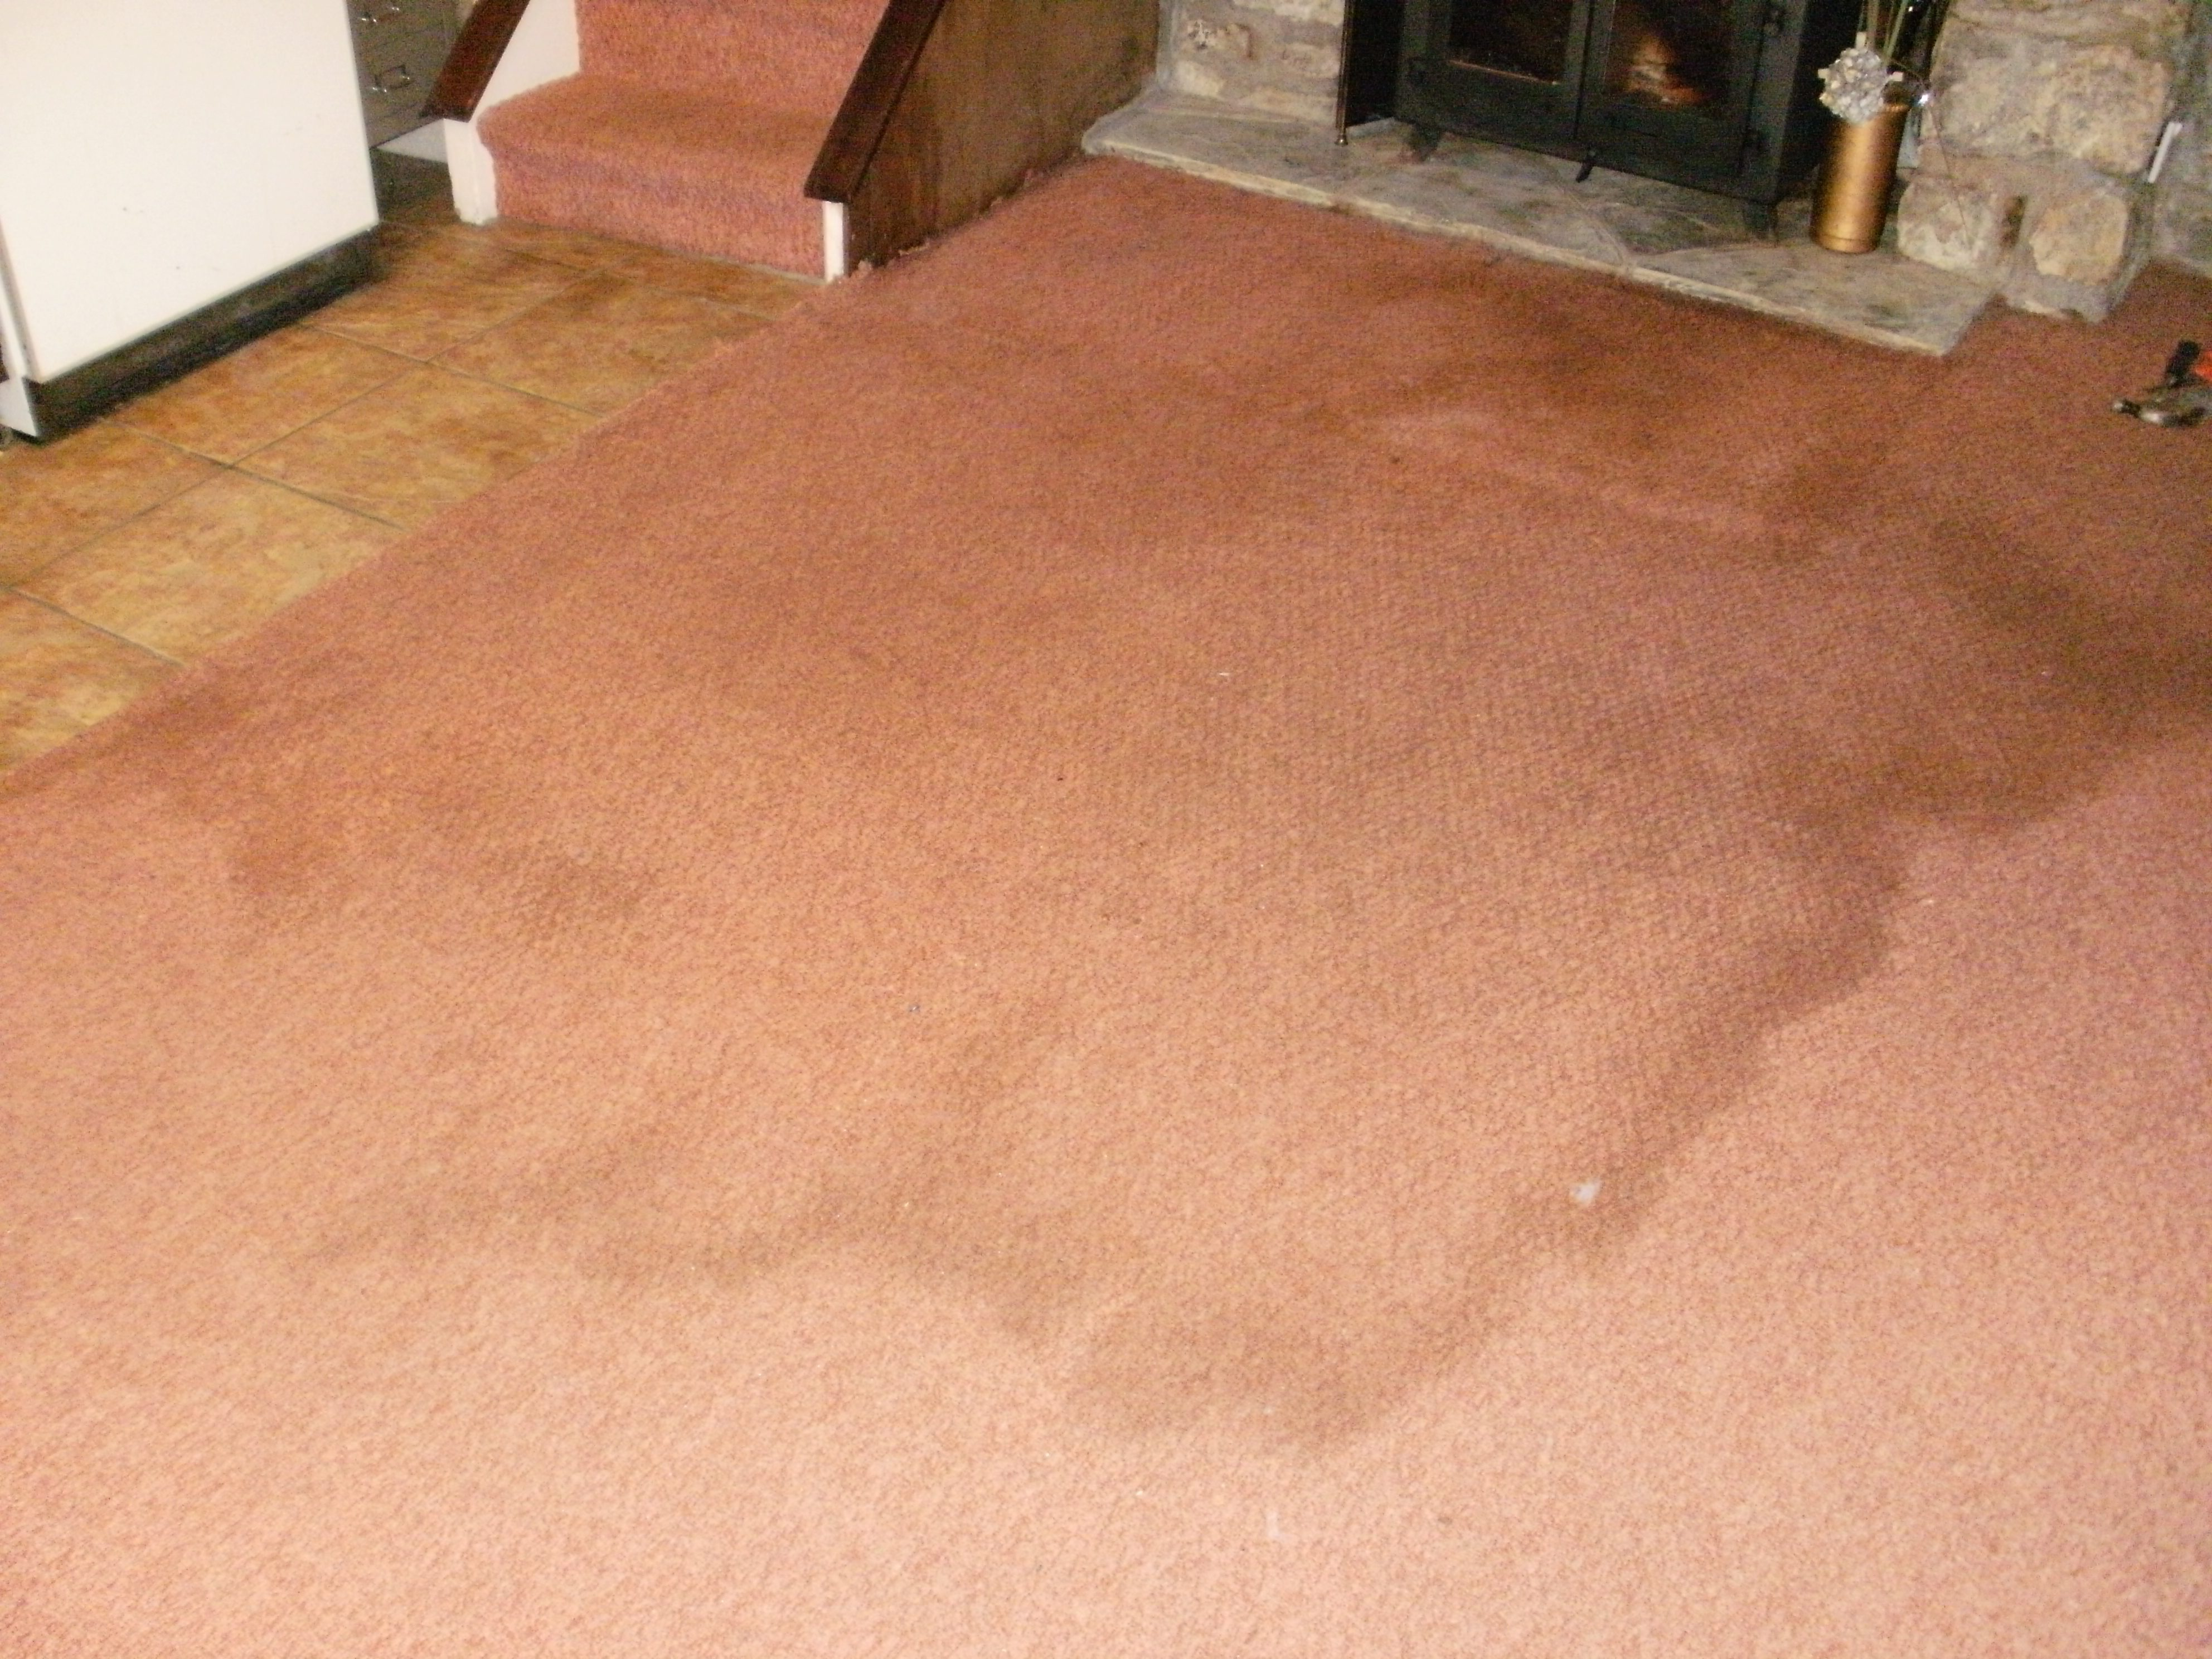 Cleaning a stained carpet